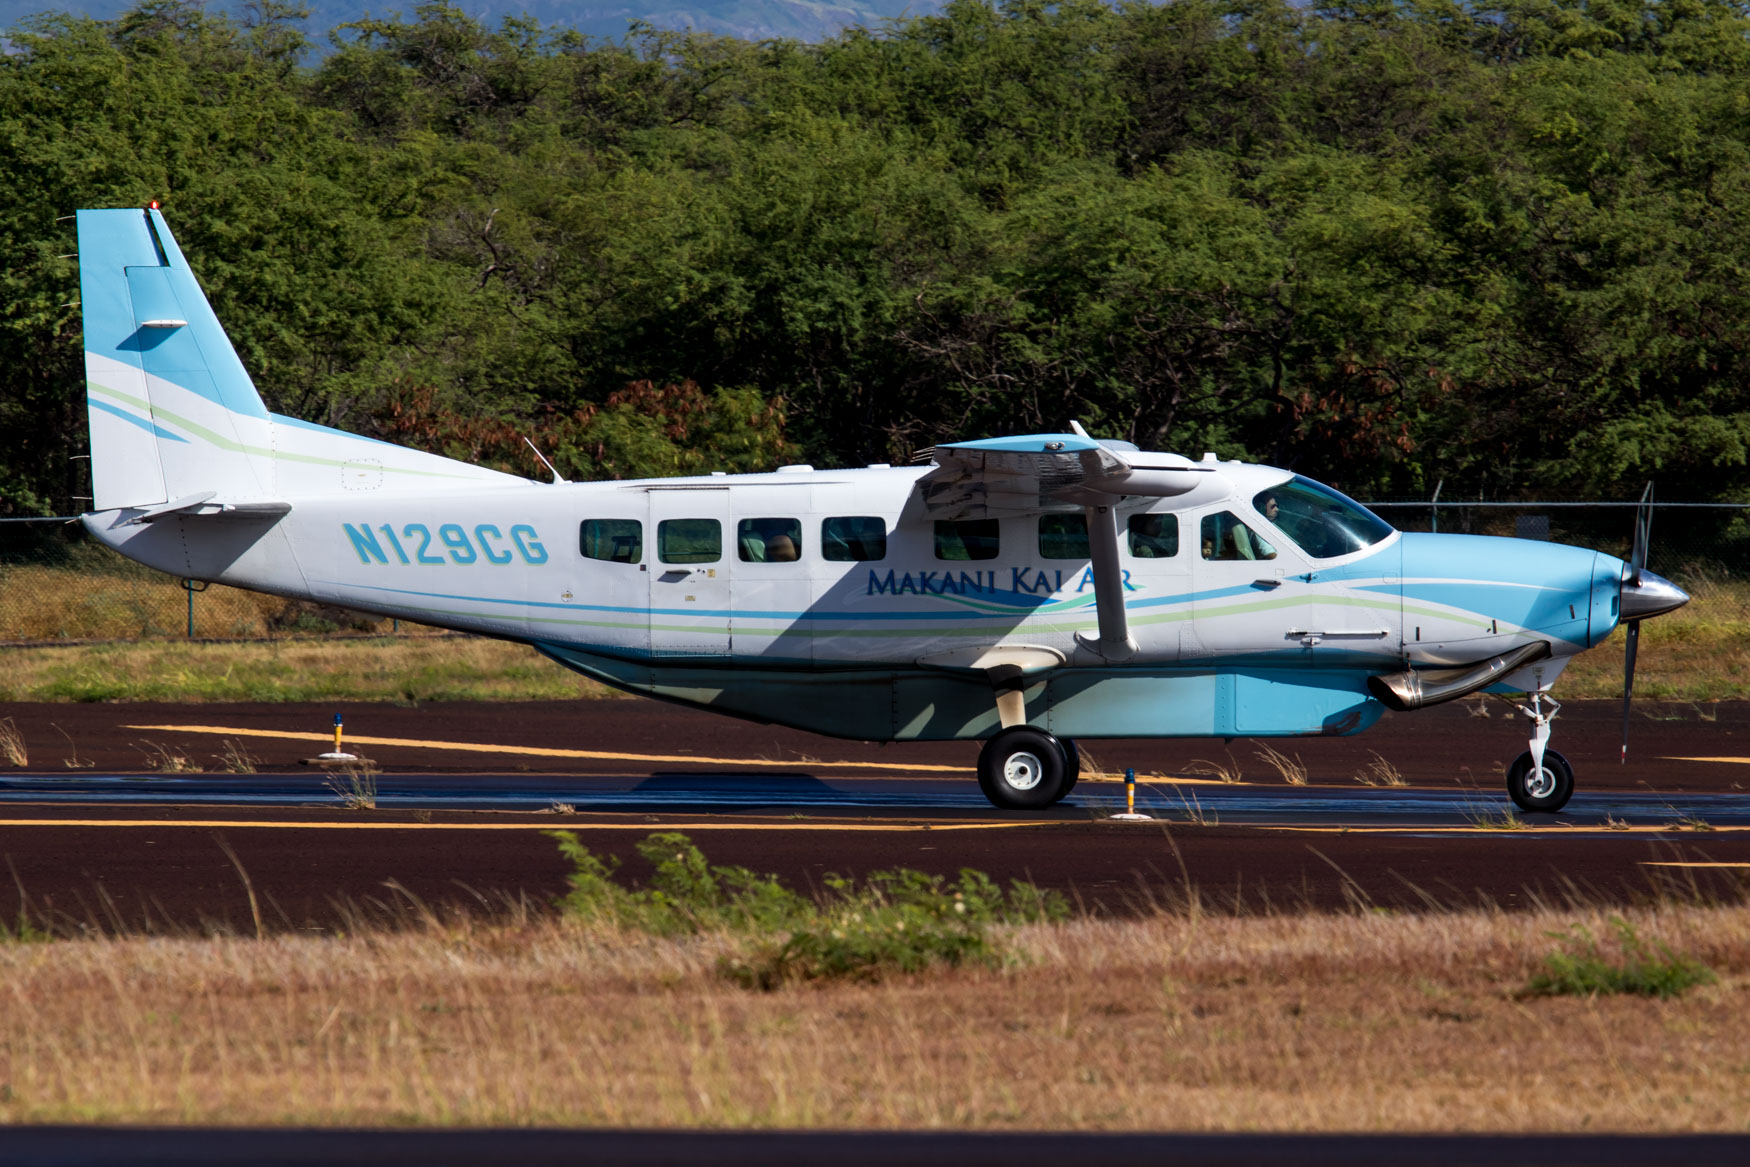 Makani Kai Air Cessna Grand Caravan